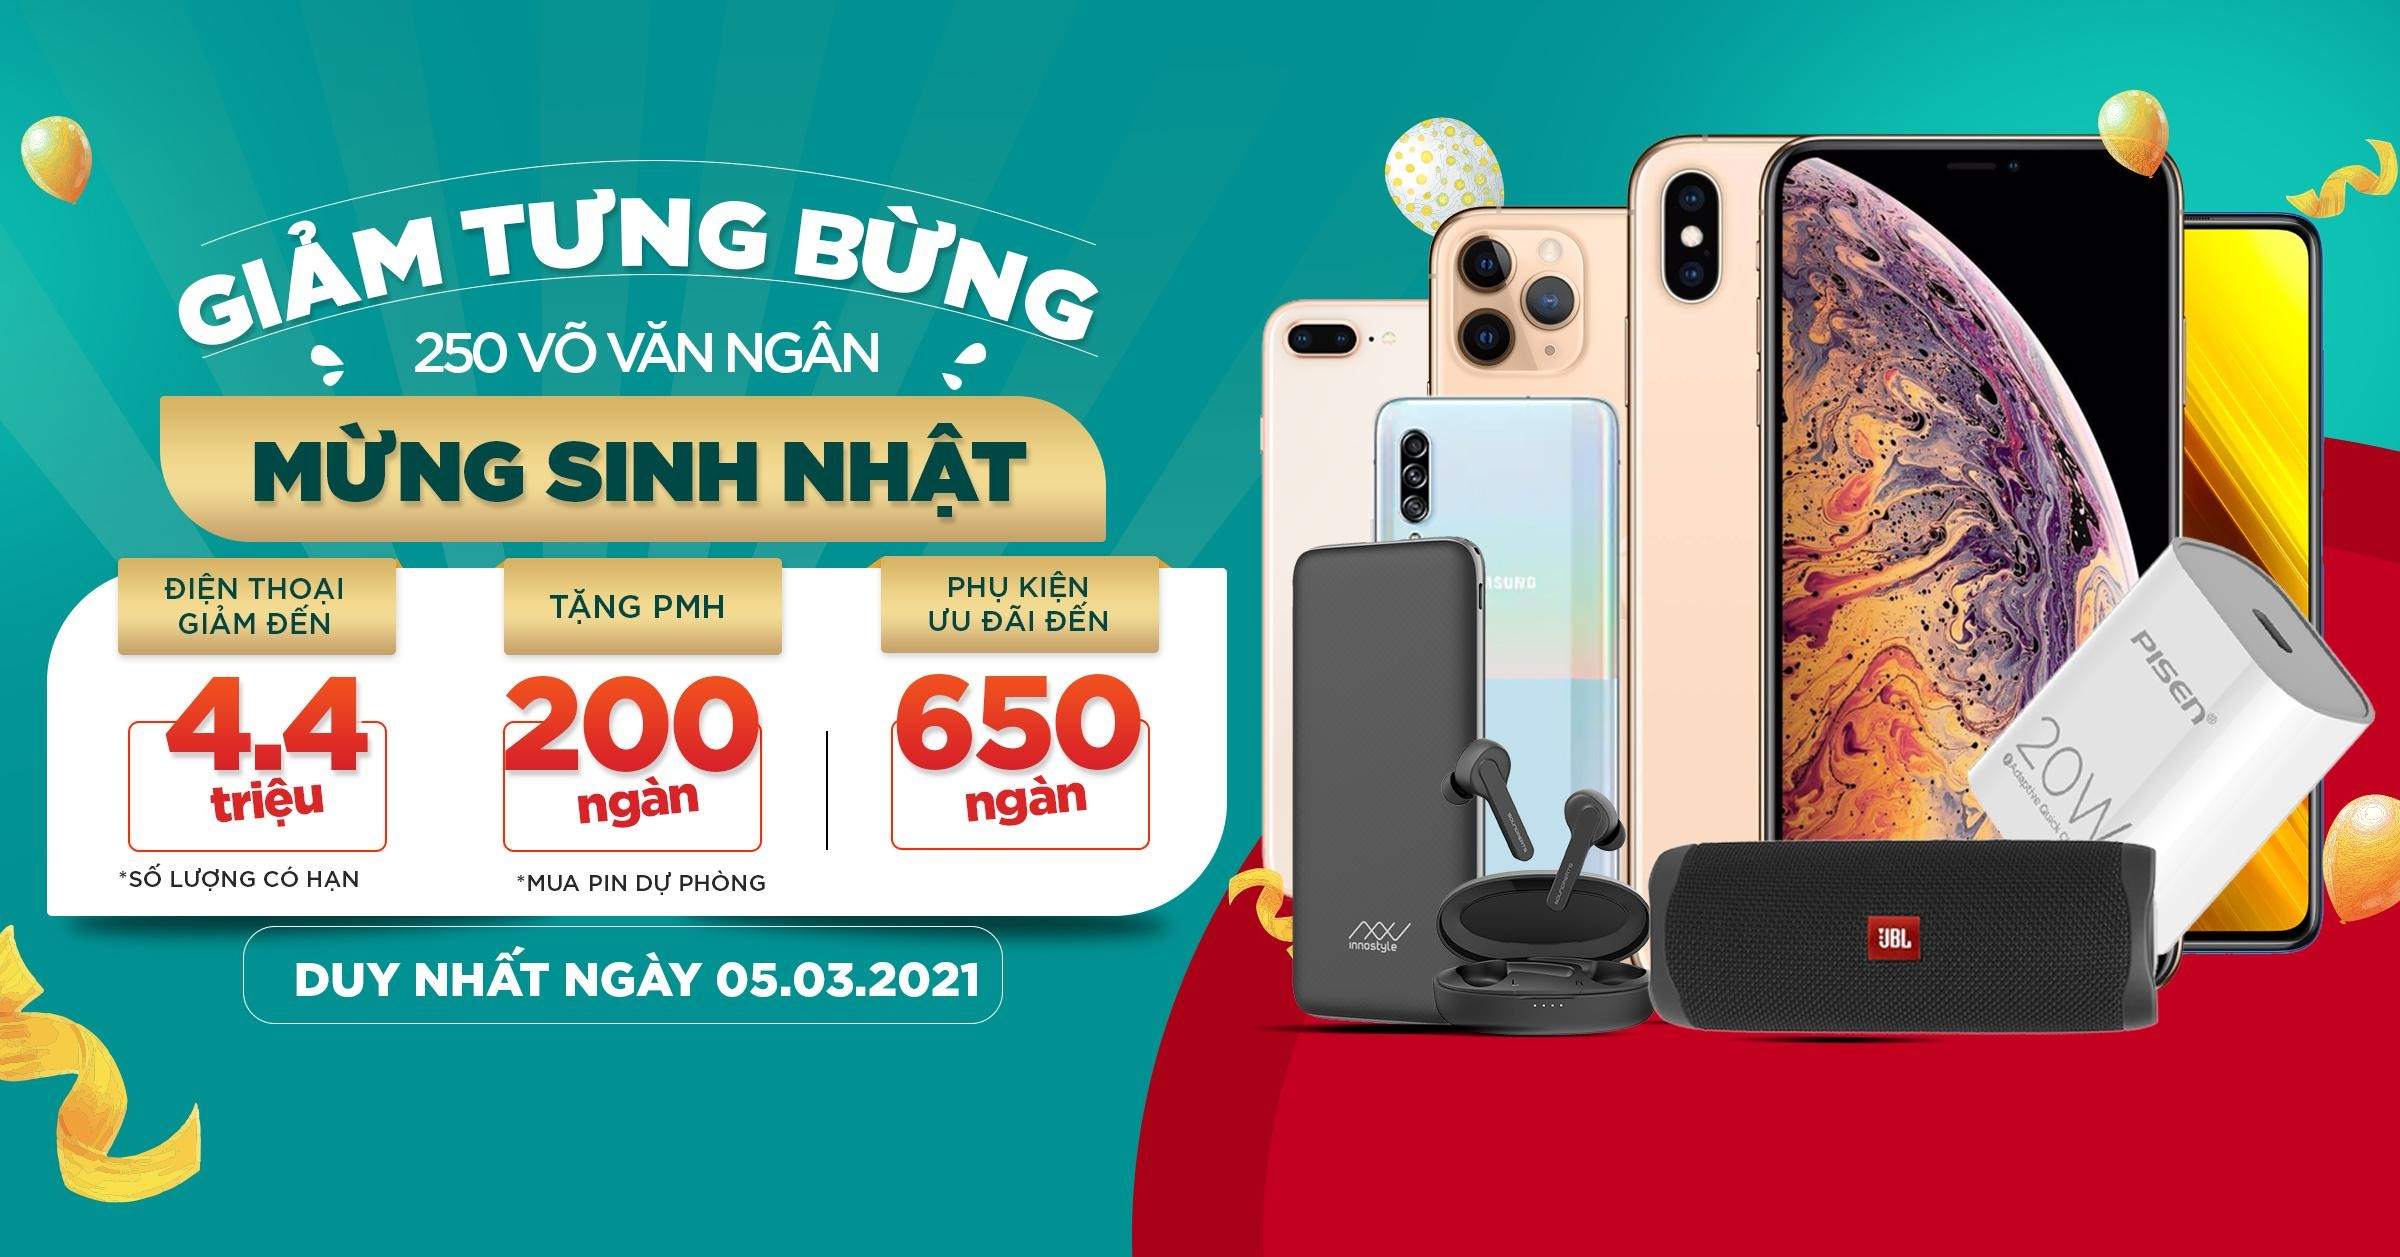 iPhone 12 Pro Max, iPhone Xs and Galaxy S21 Ultra 5G down to 4.4 million dong at XTmobile - VnReview